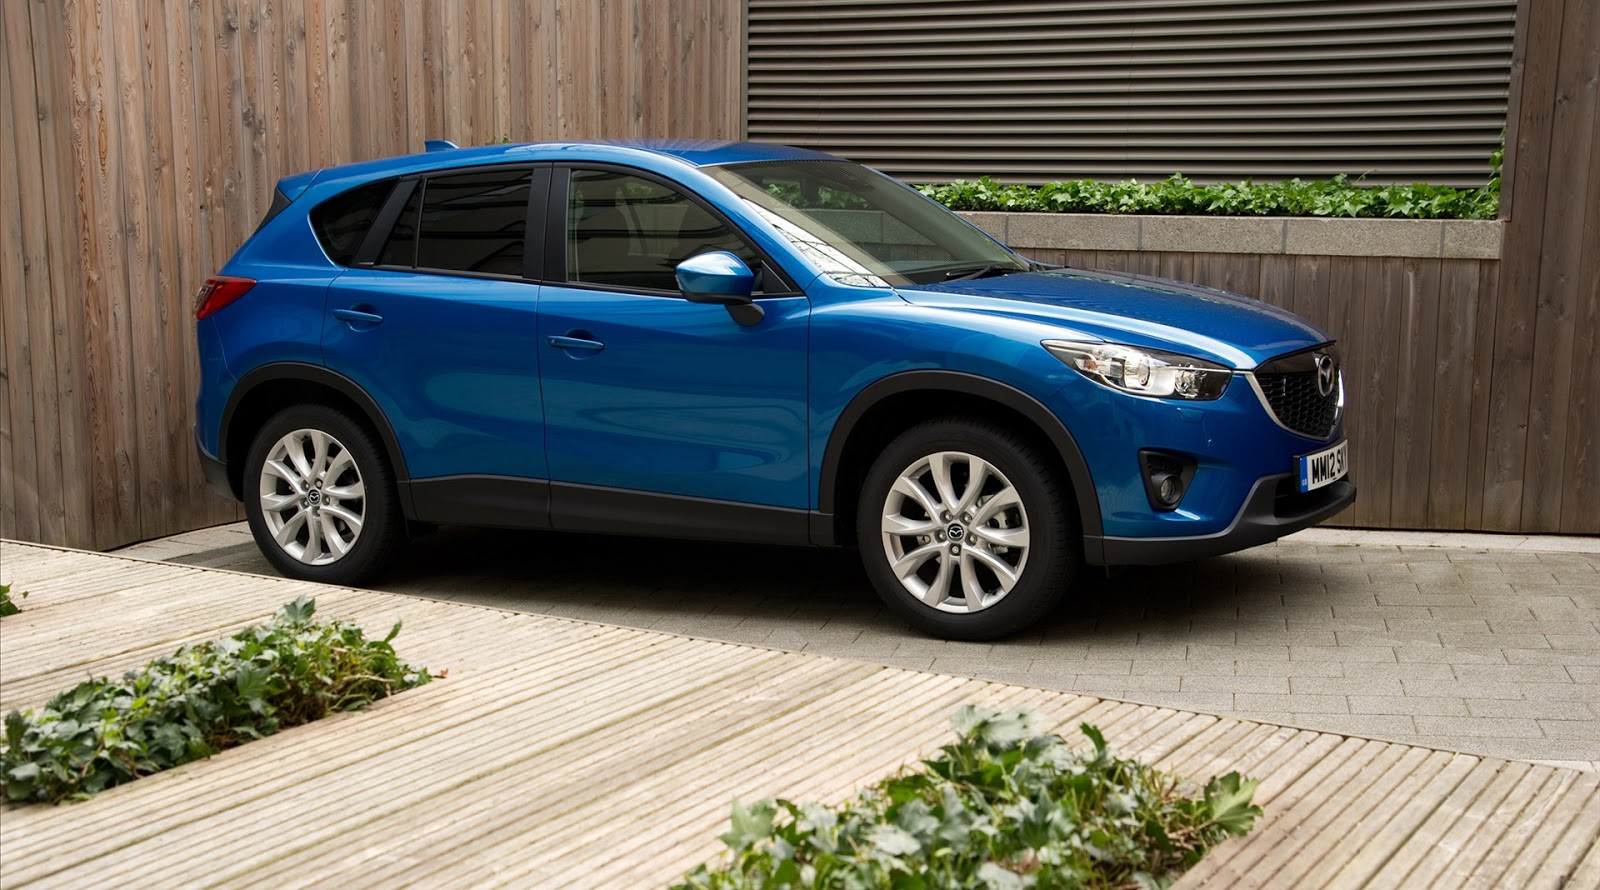 Mazda Cx 5 Cargo Space Dimensions >> 2013 Mazda cx-5 - ReViEw 4 CArS AnD TrUcKs